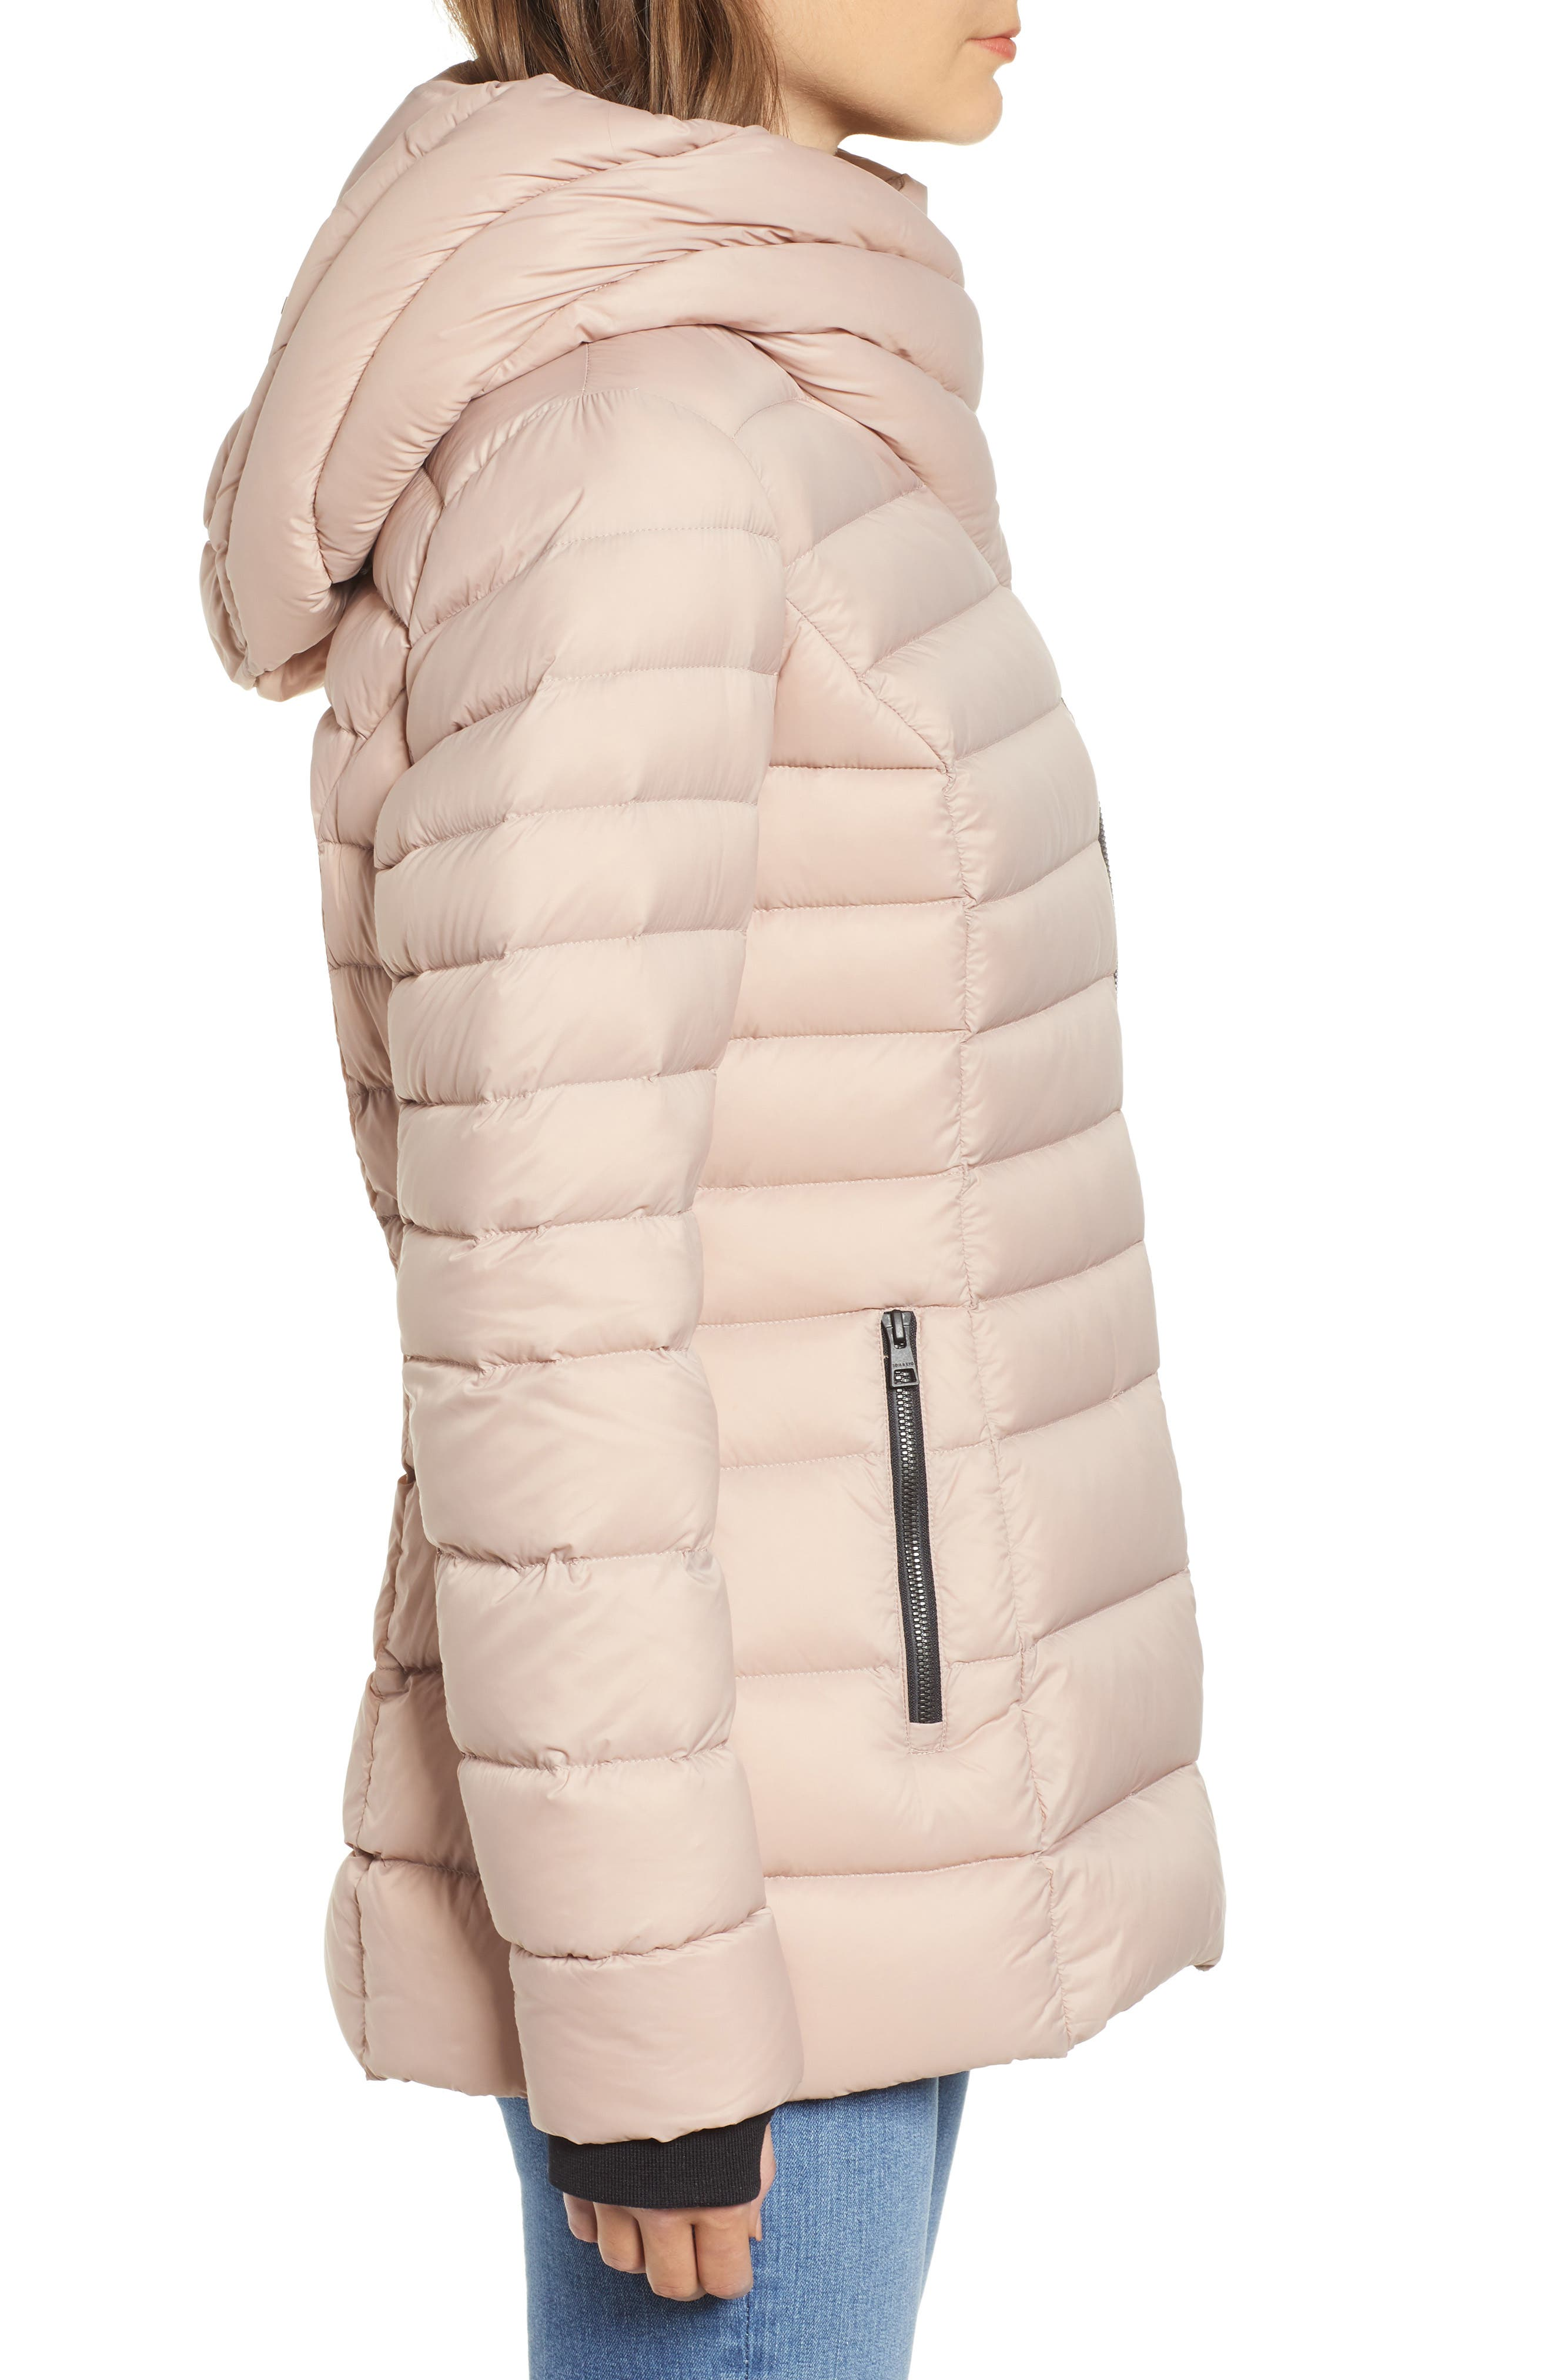 Hooded Down Puffer Jacket,                             Alternate thumbnail 3, color,                             QUARTZ